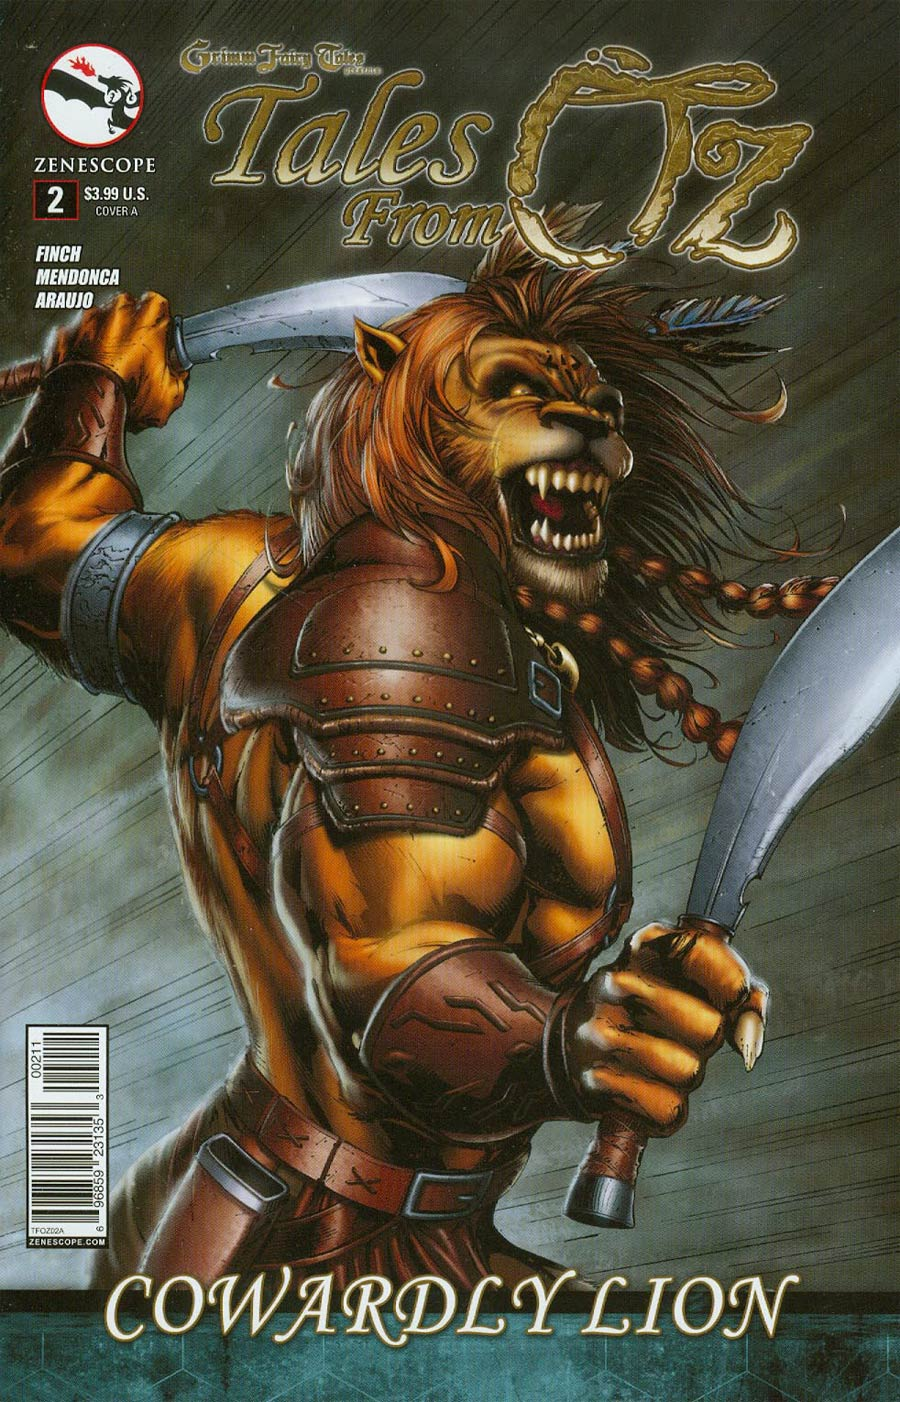 Grimm Fairy Tales Presents Tales From Oz #2 Cowardly Lion Cover A Marat Mychaels